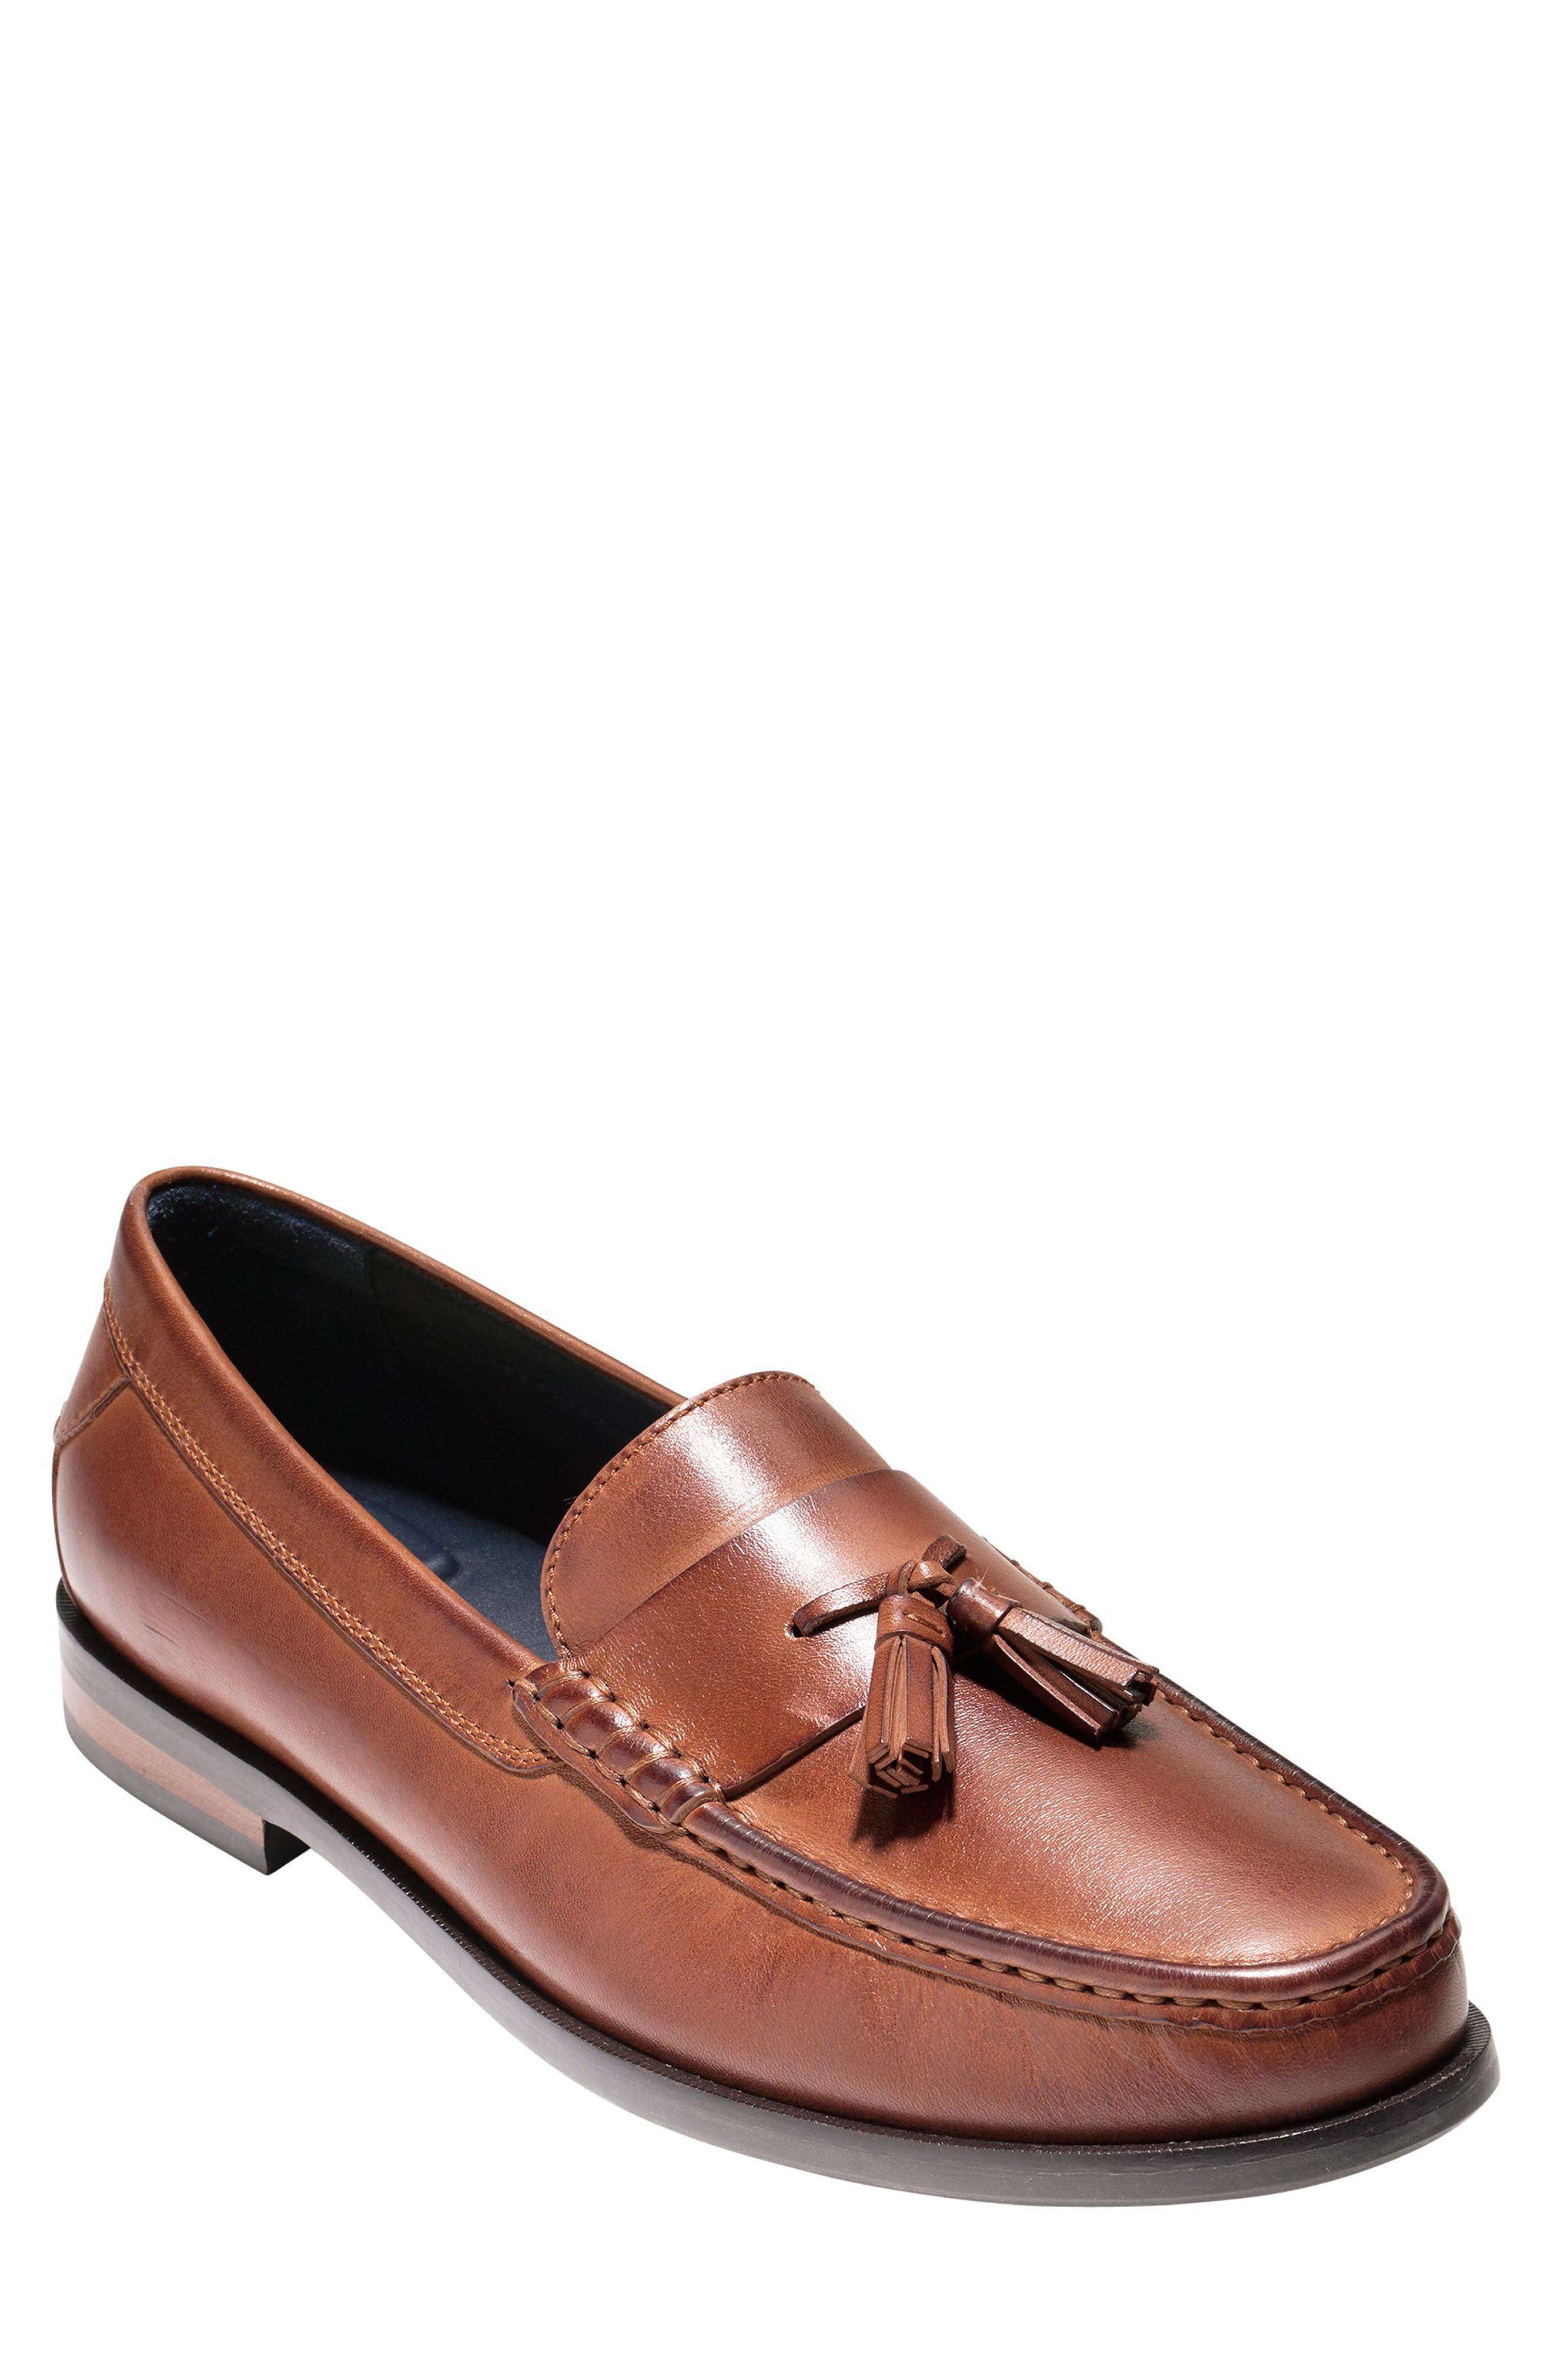 Alternate Image 1 Selected - Cole Haan Pinch Friday Tassel Loafer (Men)